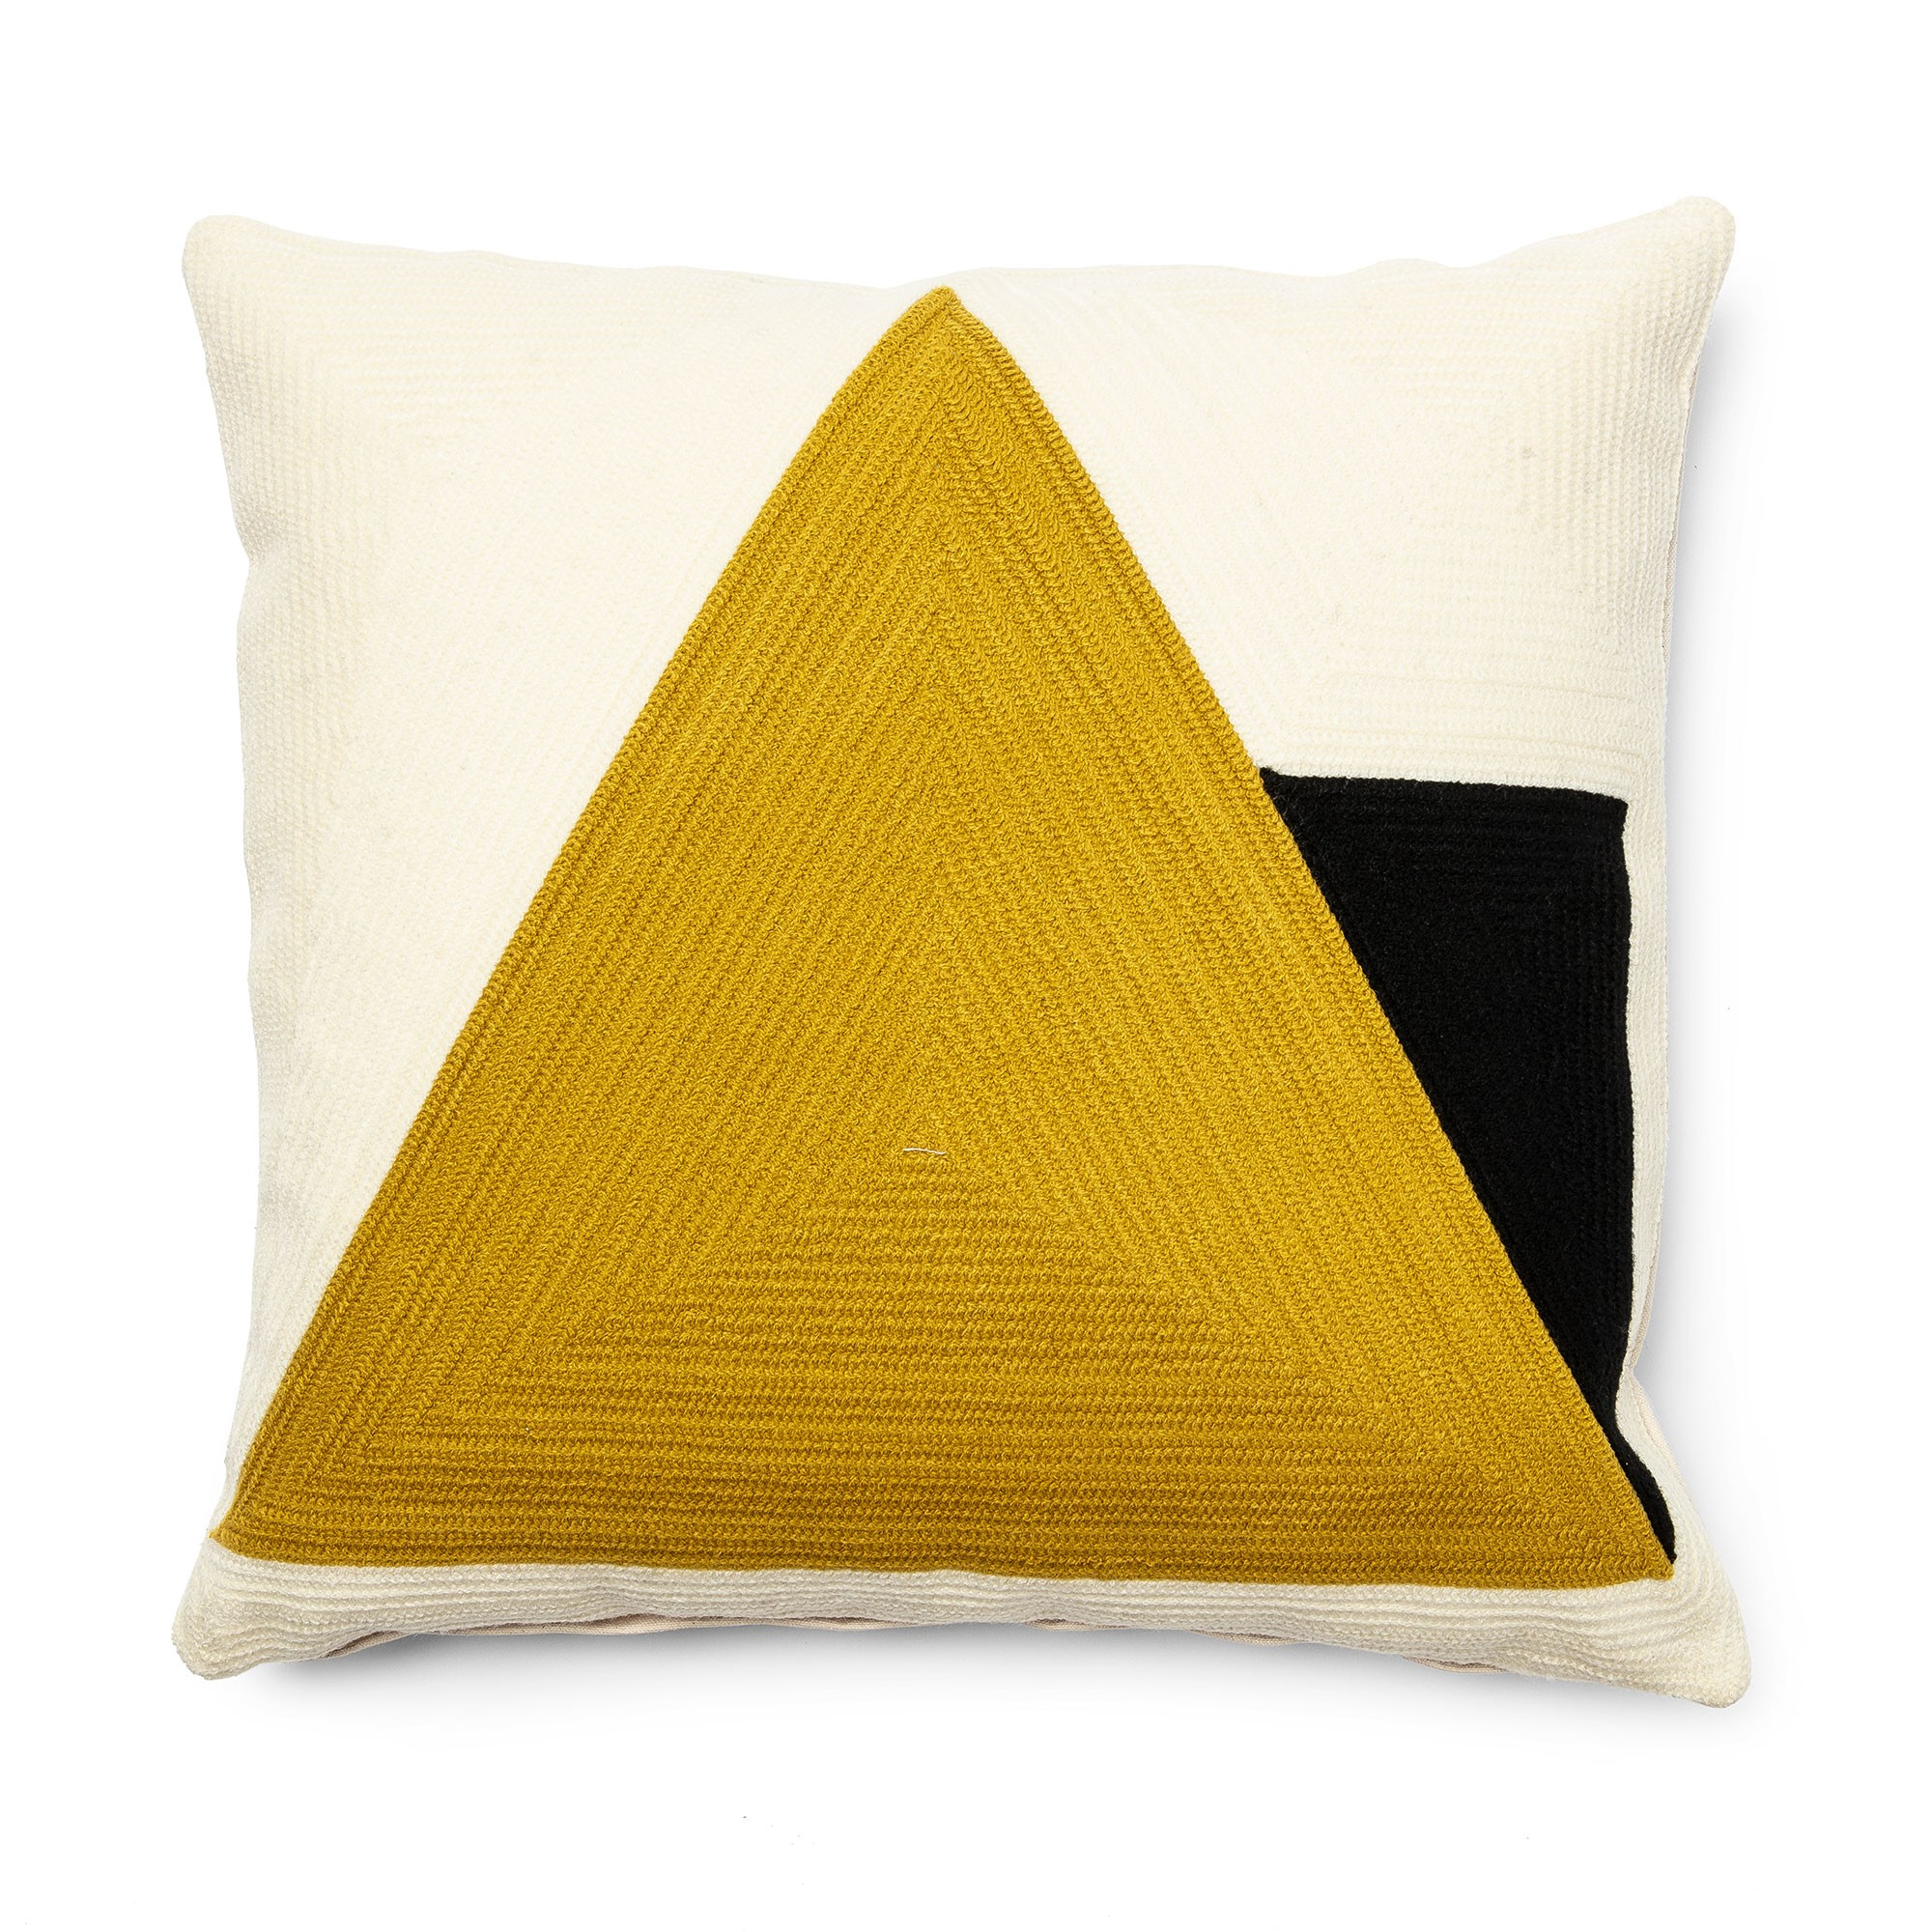 Cocoon Fabric Scatter Cushion, Big Yellow Triangle